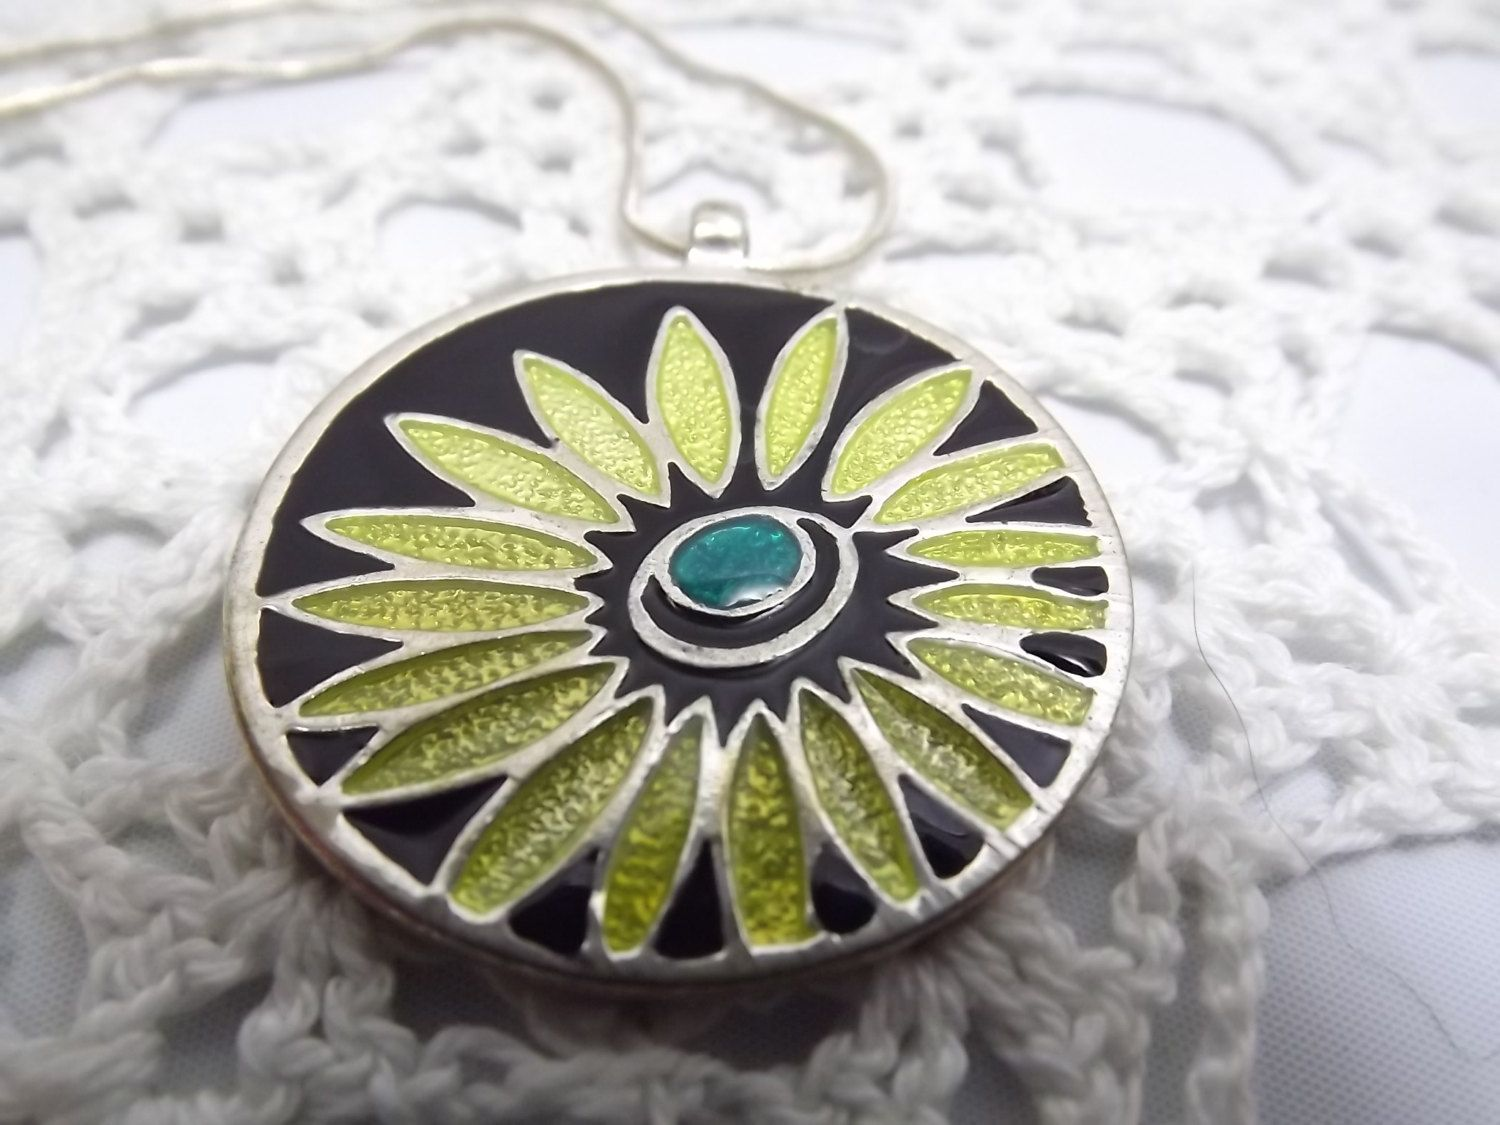 Cloisonne Flower Power Pendant, Vintage Round Enamel on Silver tone Pendant on Silver Chain, Yellow Flower with Green Center all on Black by OutrageousVintagious on Etsy